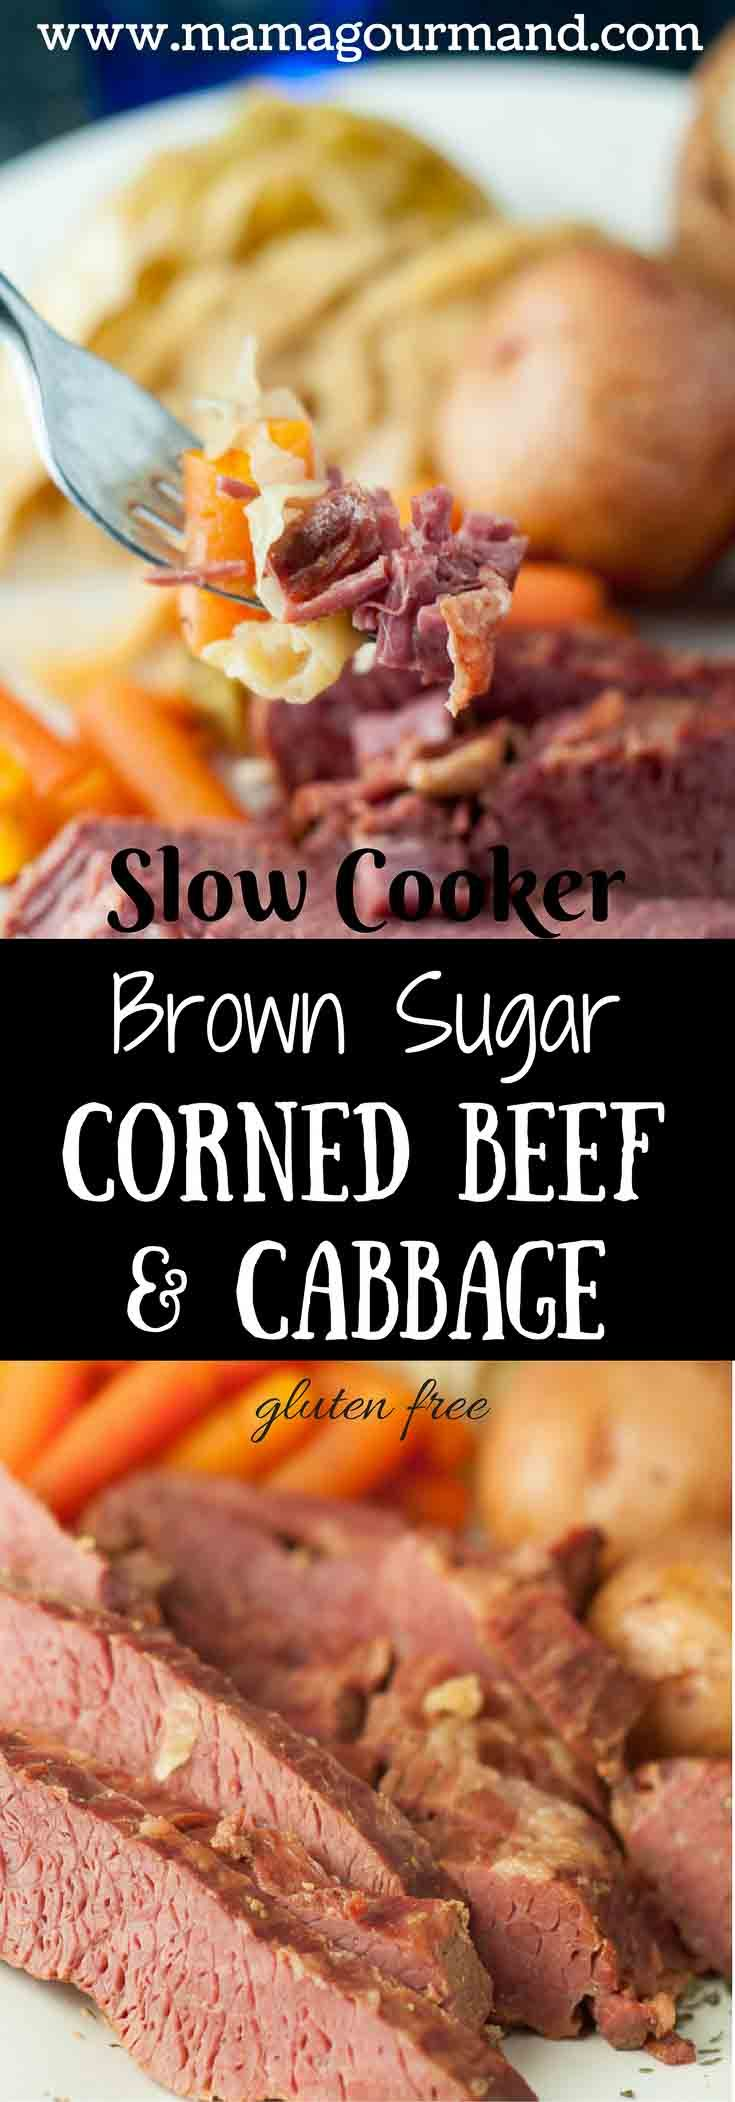 This Slow Cooker Apple and Brown Sugar Corned Beef and Cabbage recipe will be the best version you have ever tasted! Double the recipe because it's that good. http://www.mamagourmand.com via @mamagourmand